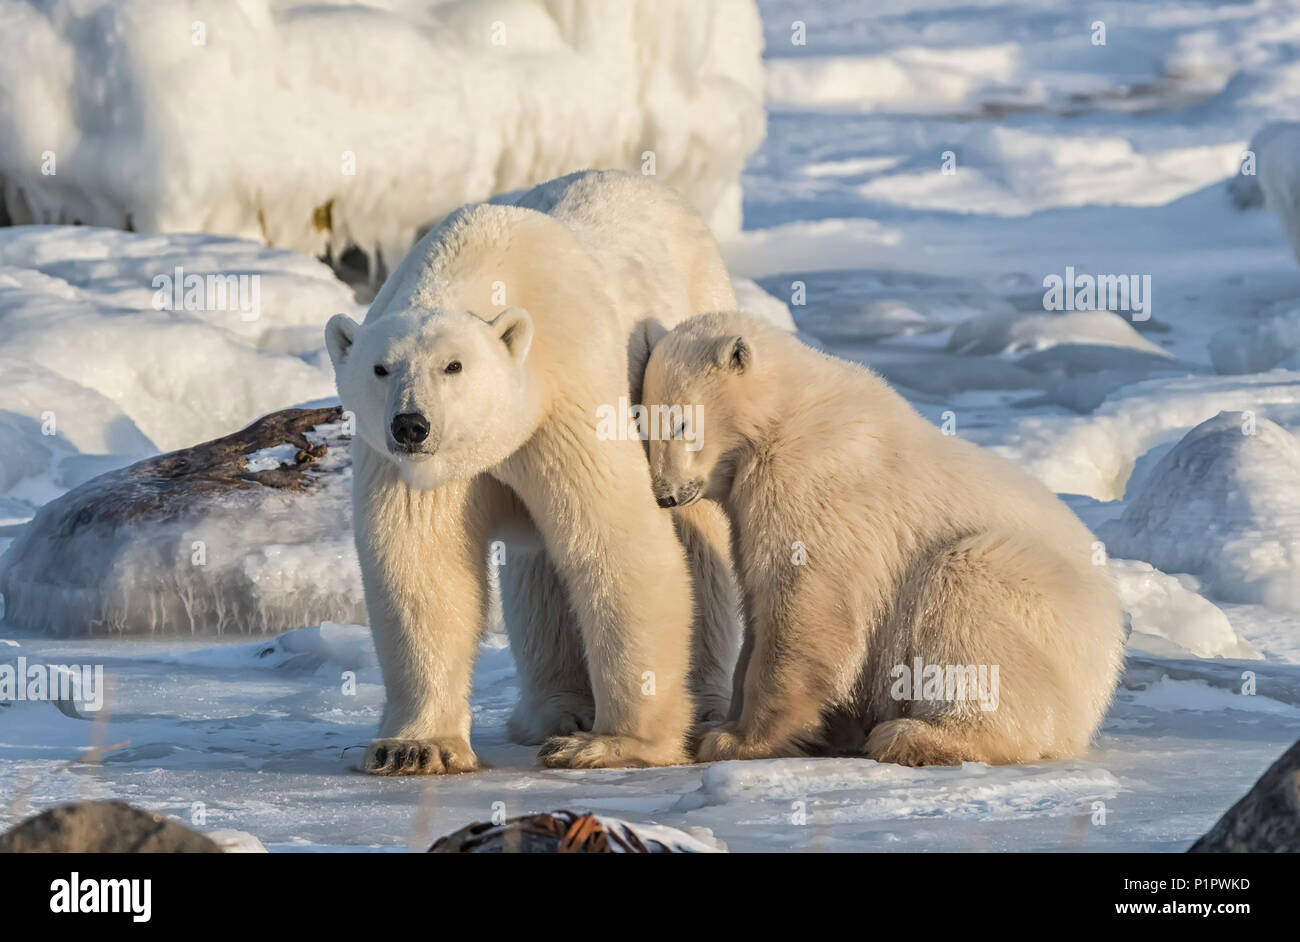 Mother and cub Polar bears (Ursus maritimus) in the snow; Churchill, Manitoba, Canada - Stock Image